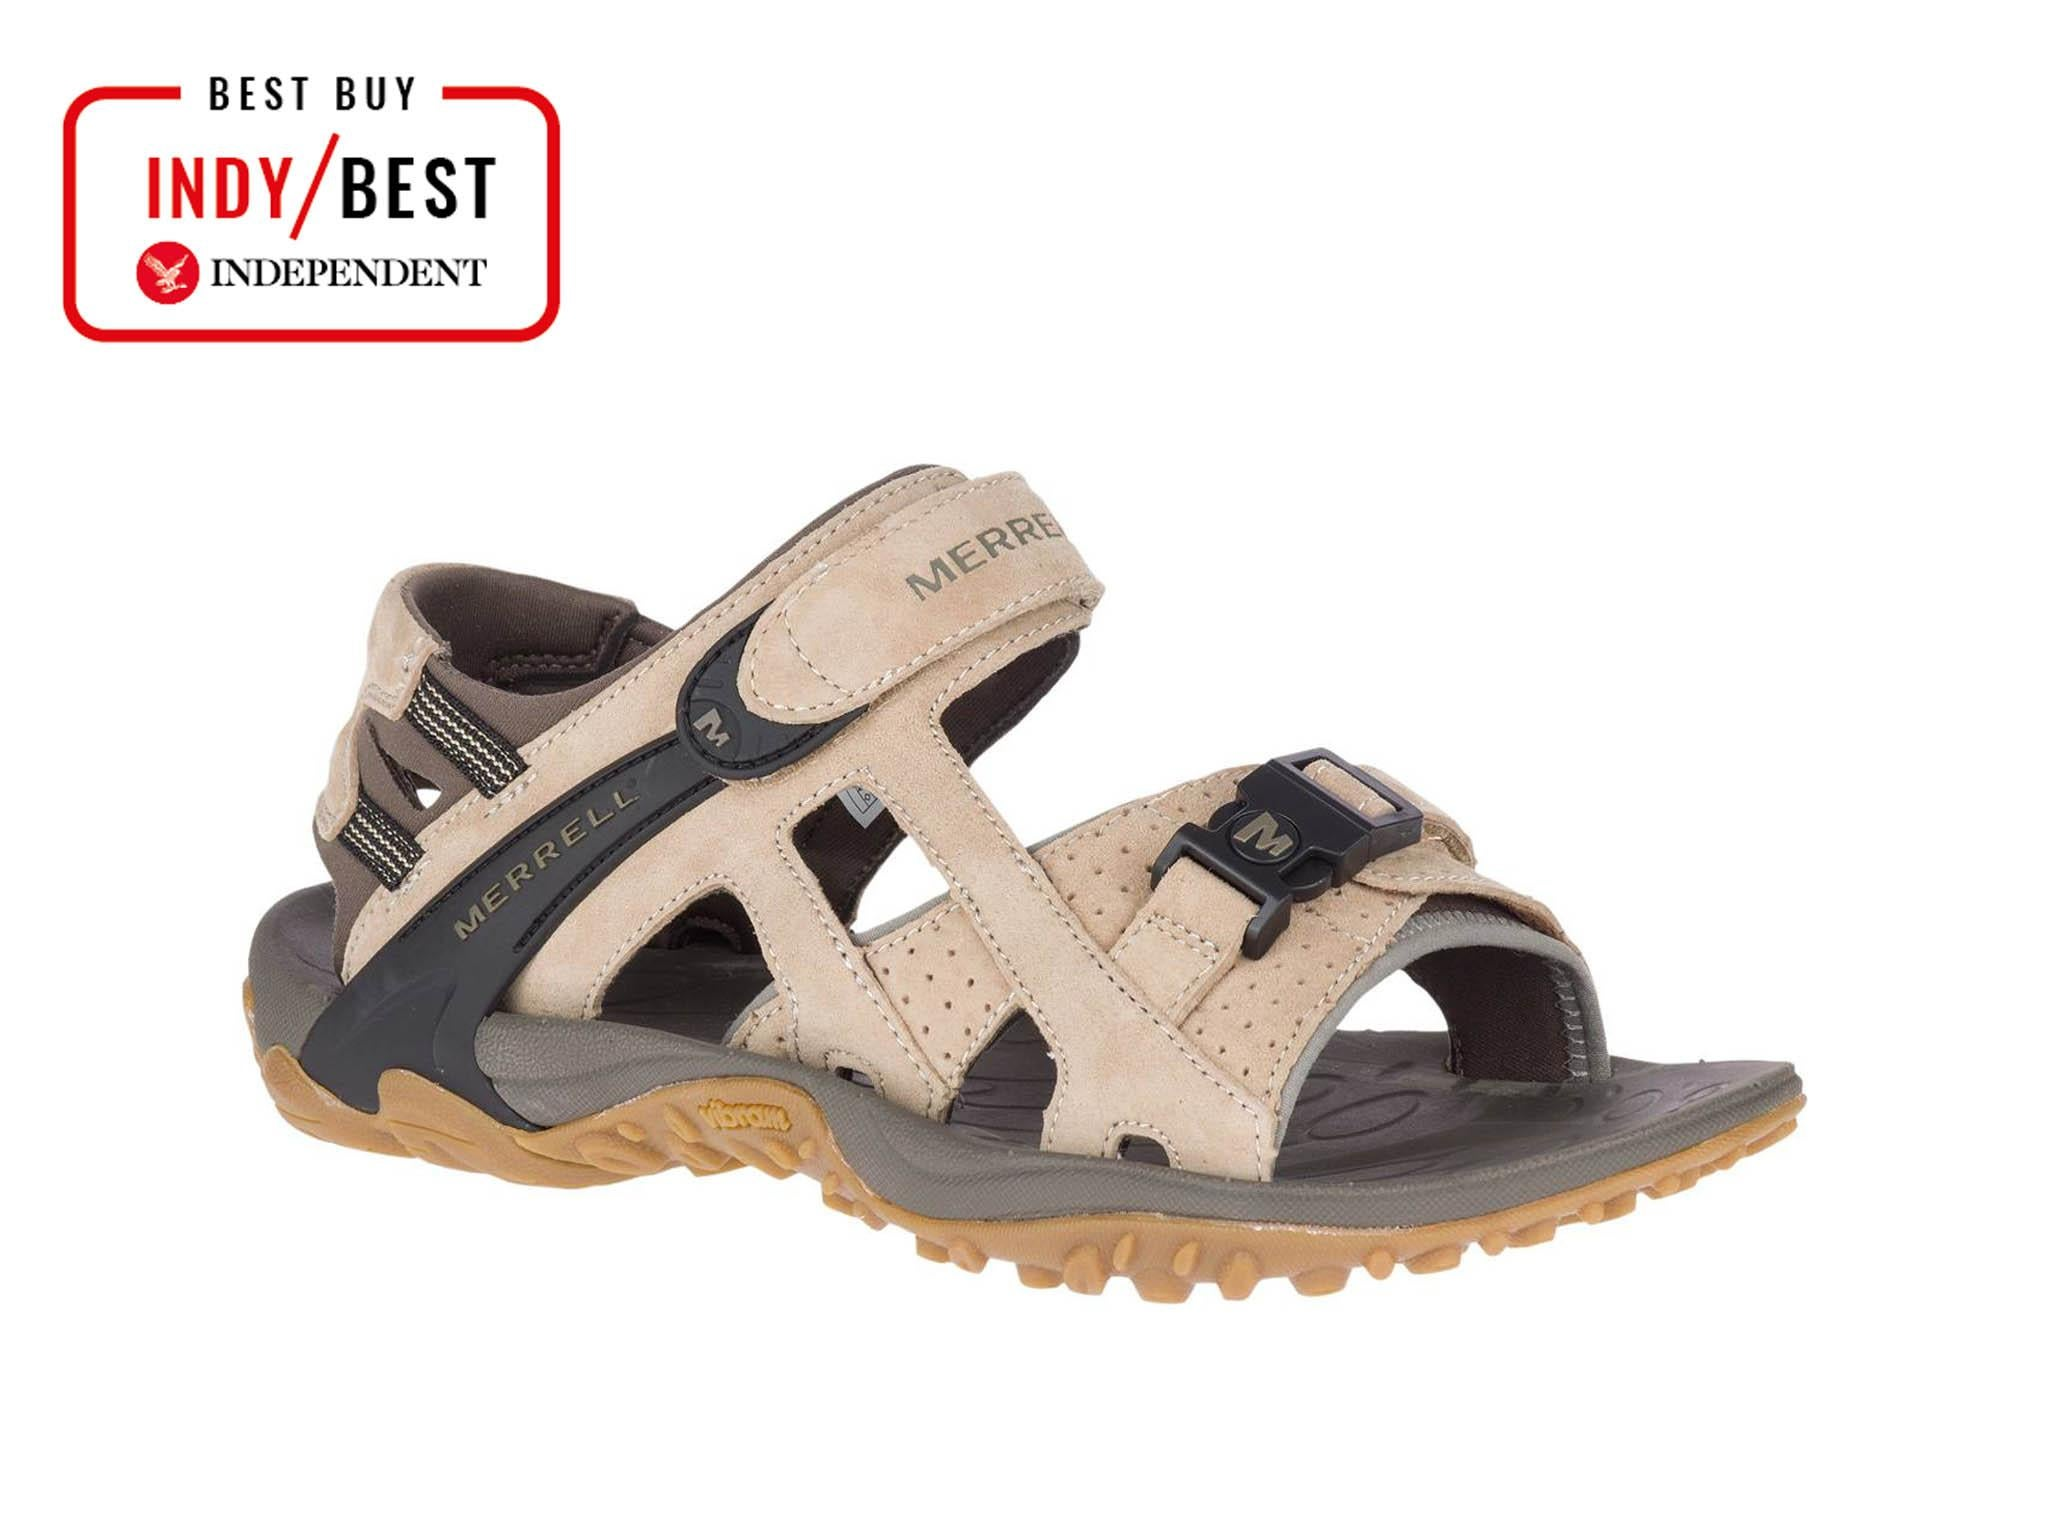 walking sandals womens with big toe strap uk